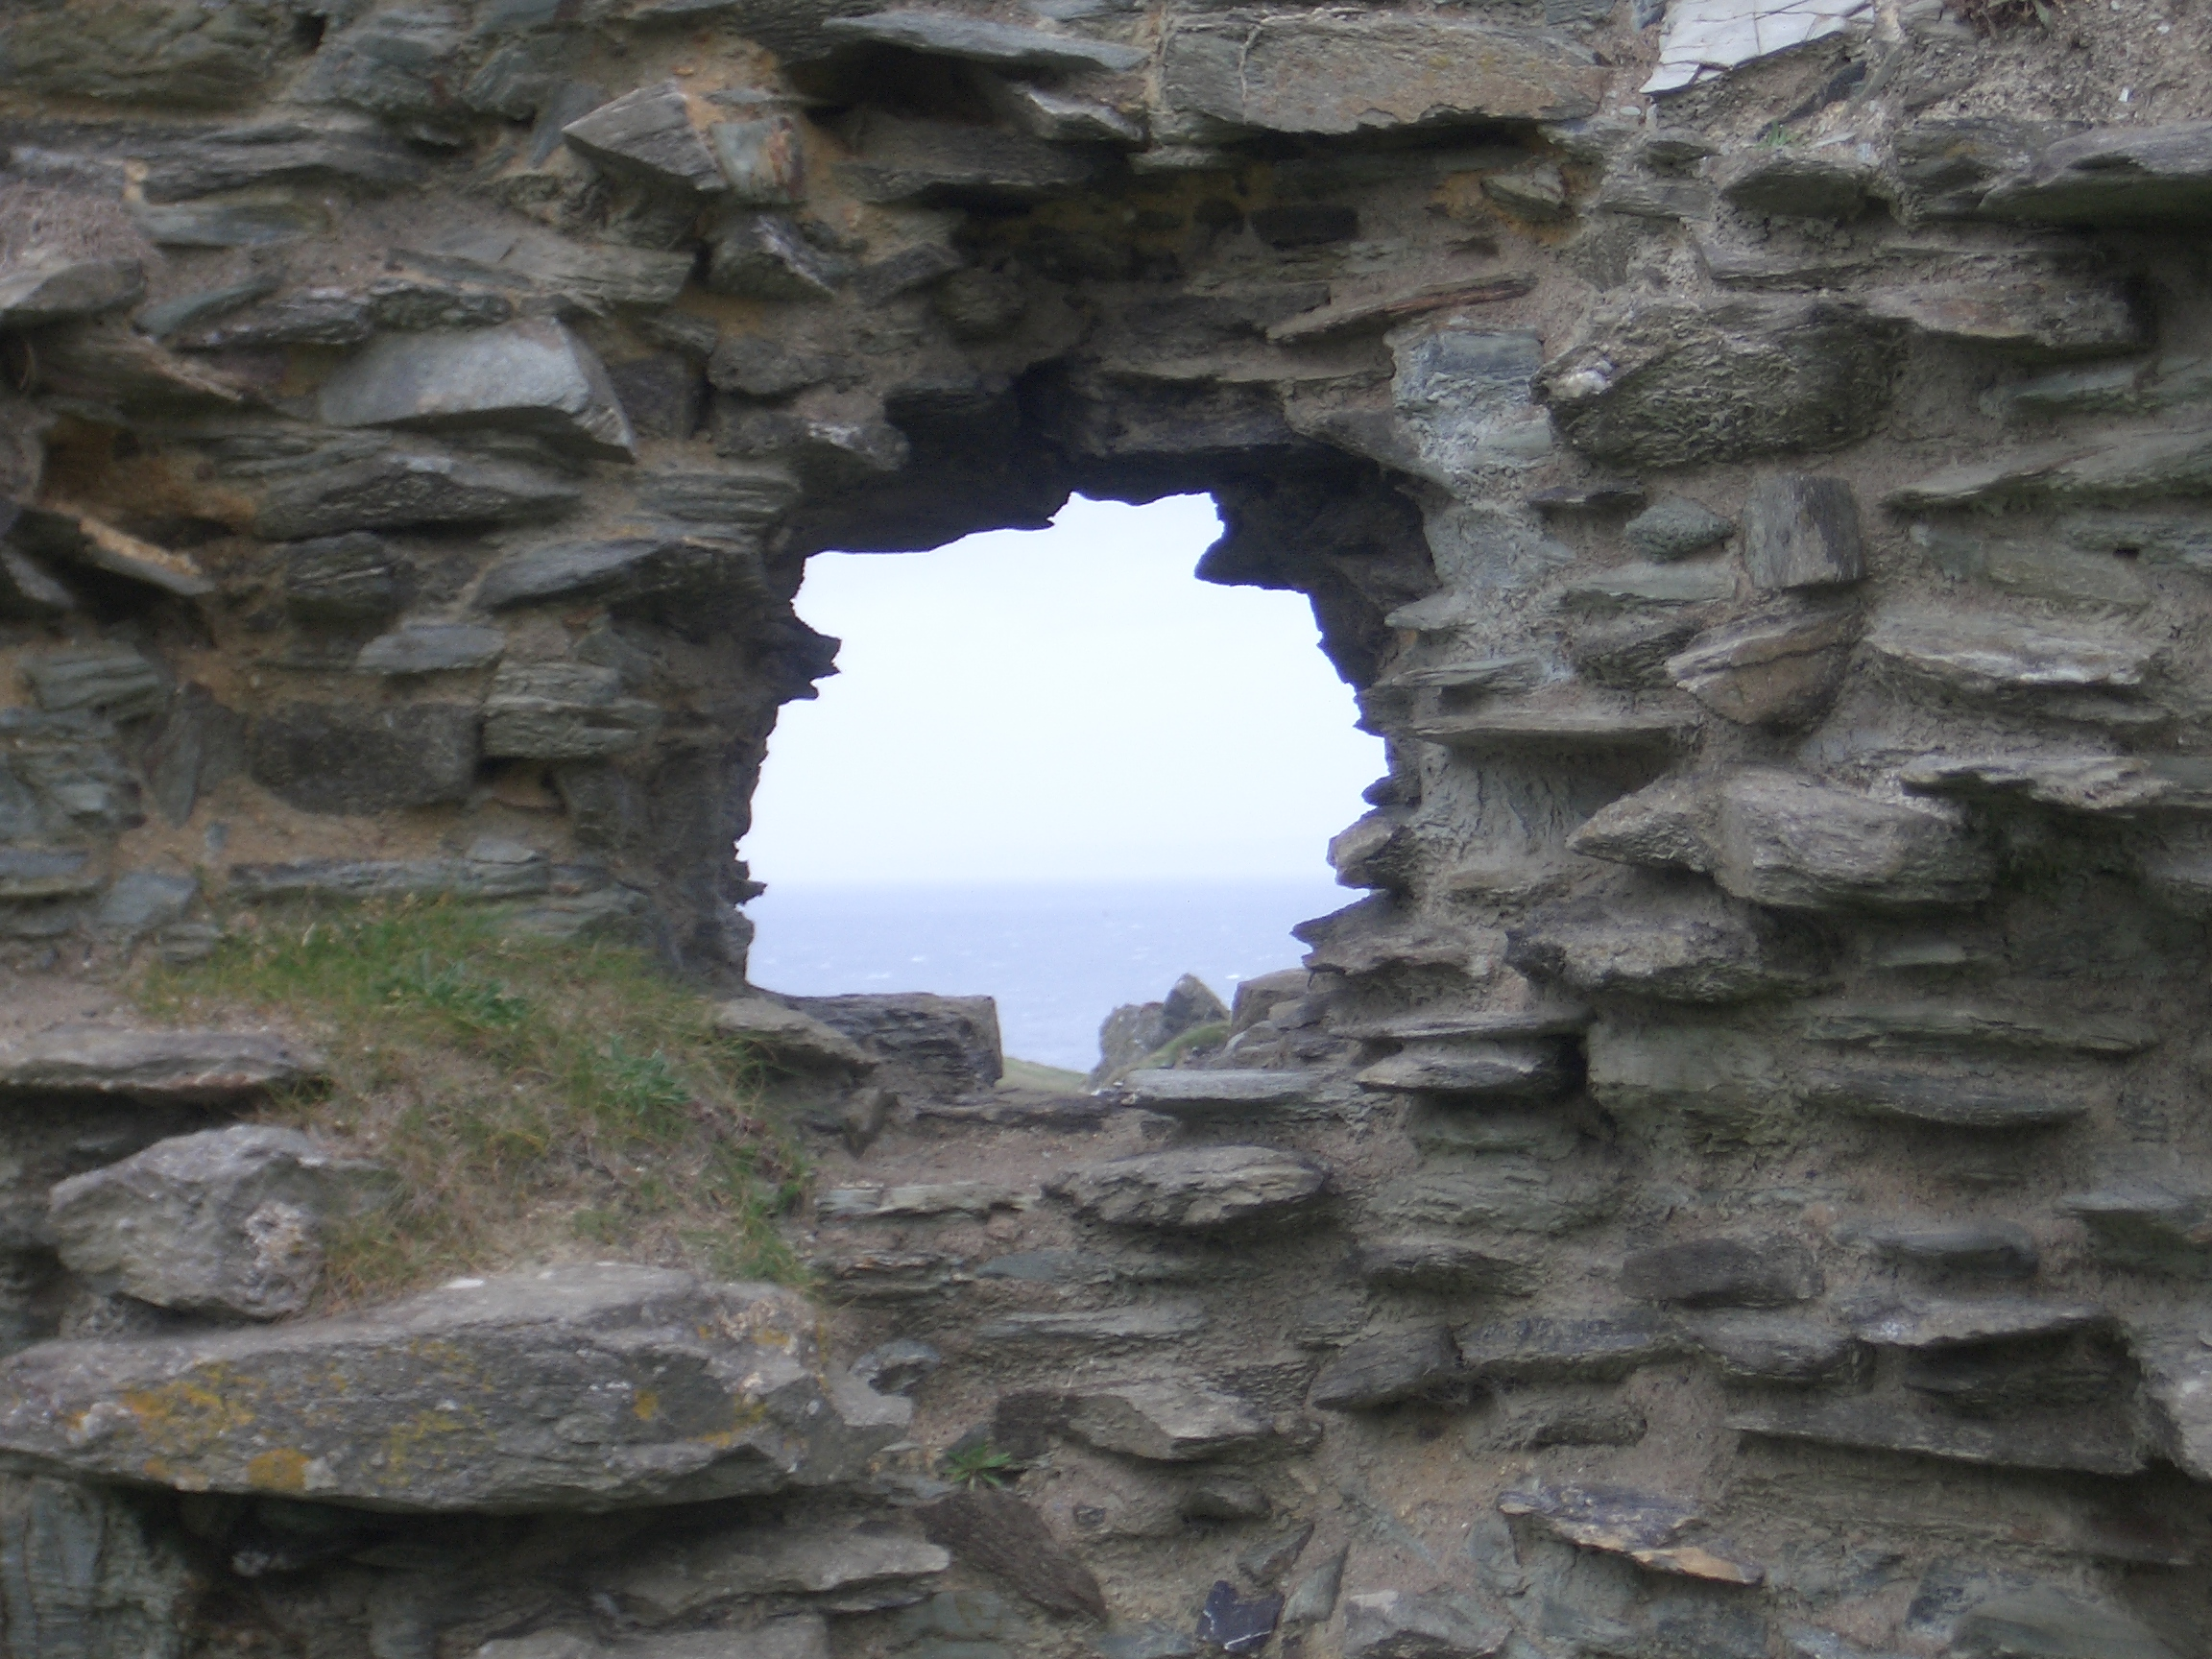 3d Brick Wallpaper Uk Ruins Of Tintagel Castle 7 Hole In The Castle Wall Image